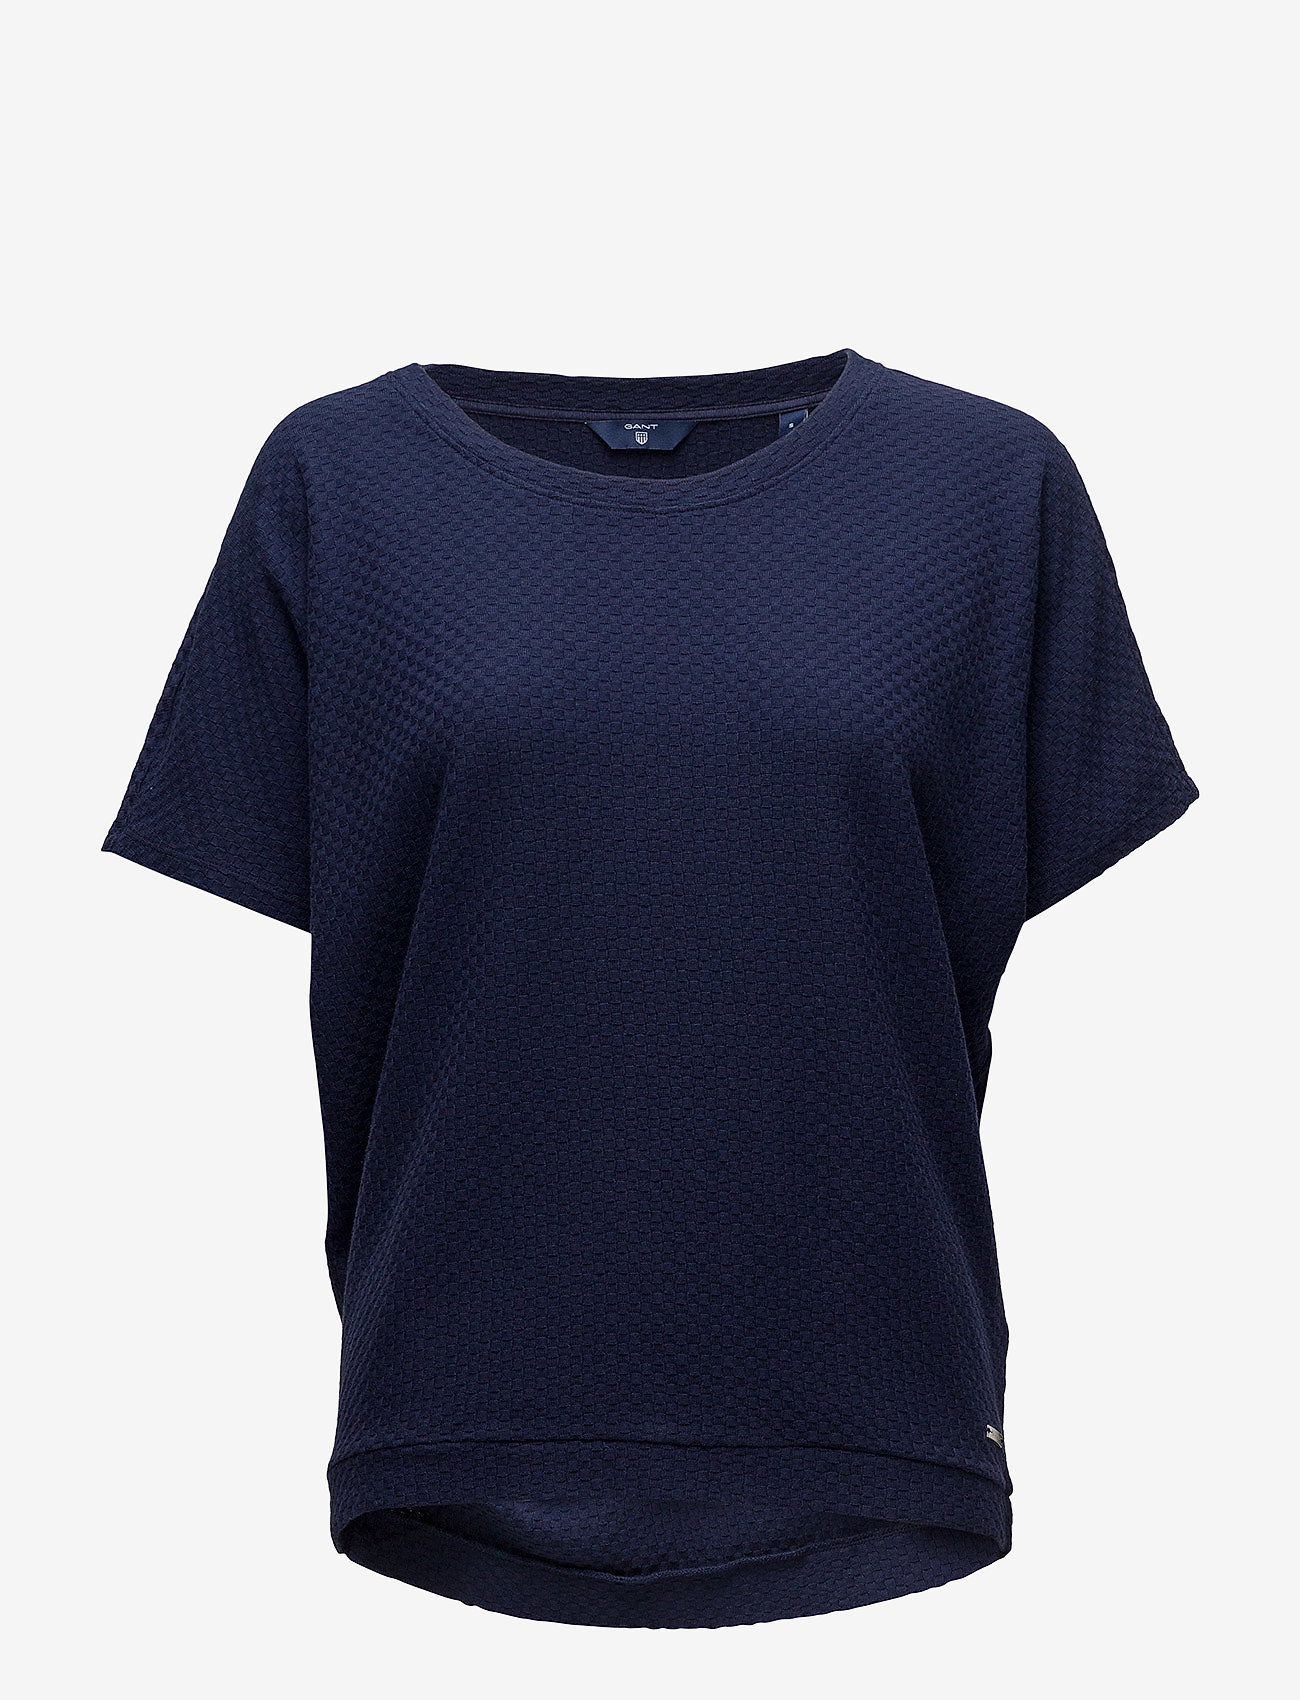 Gant - O1. SMALL SQUARE PATTERN C-NECK TOP - t-shirts - evening blue